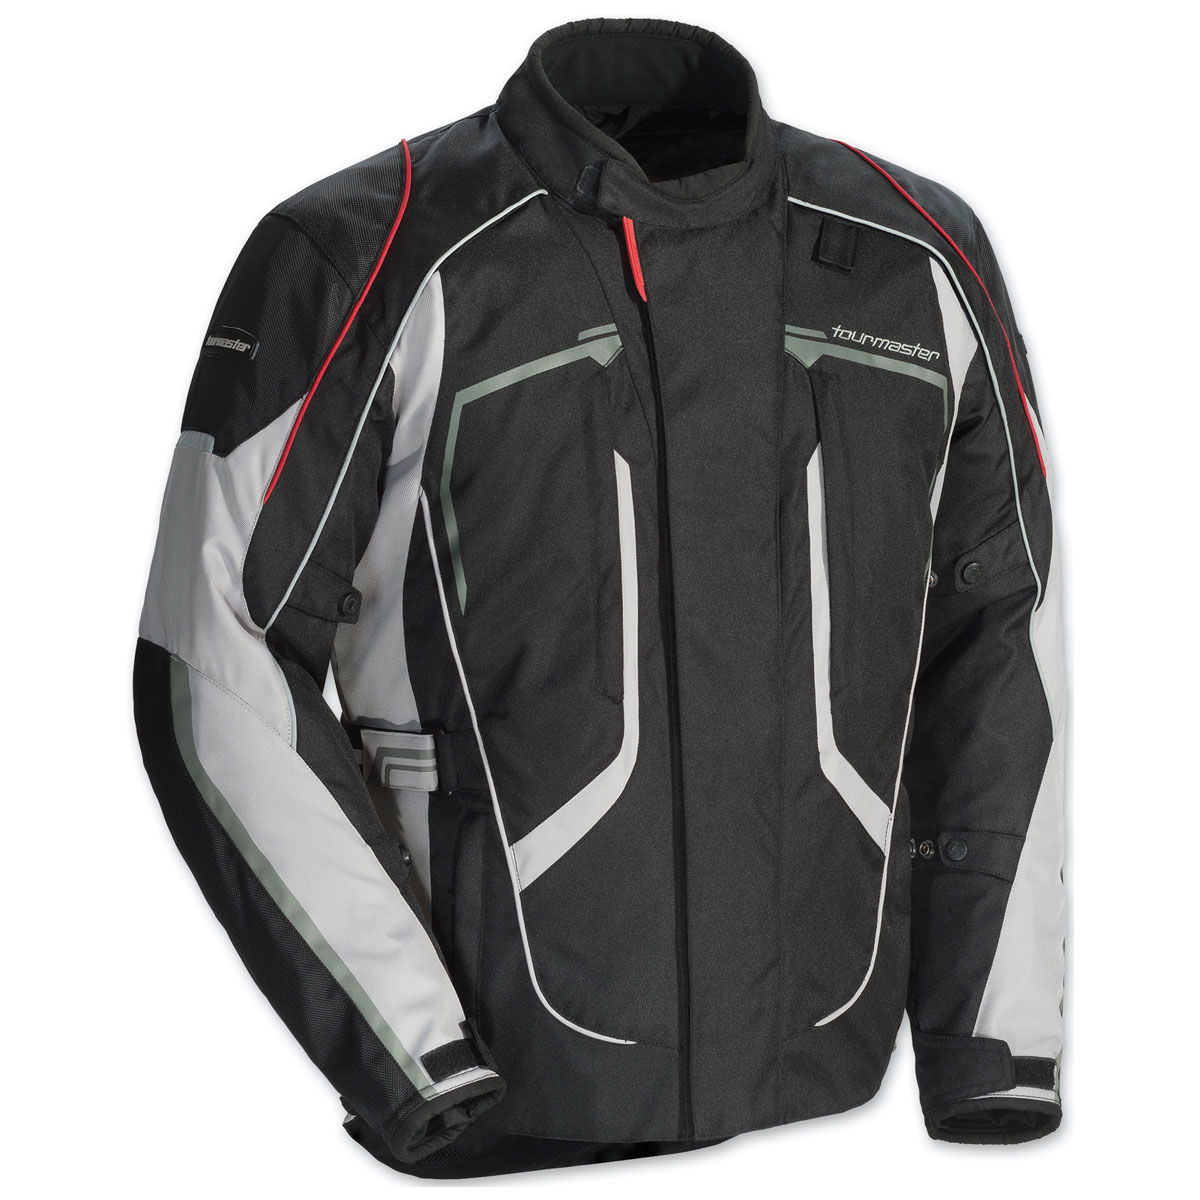 Tour Master Men's Advanced Gray/Black Jacket